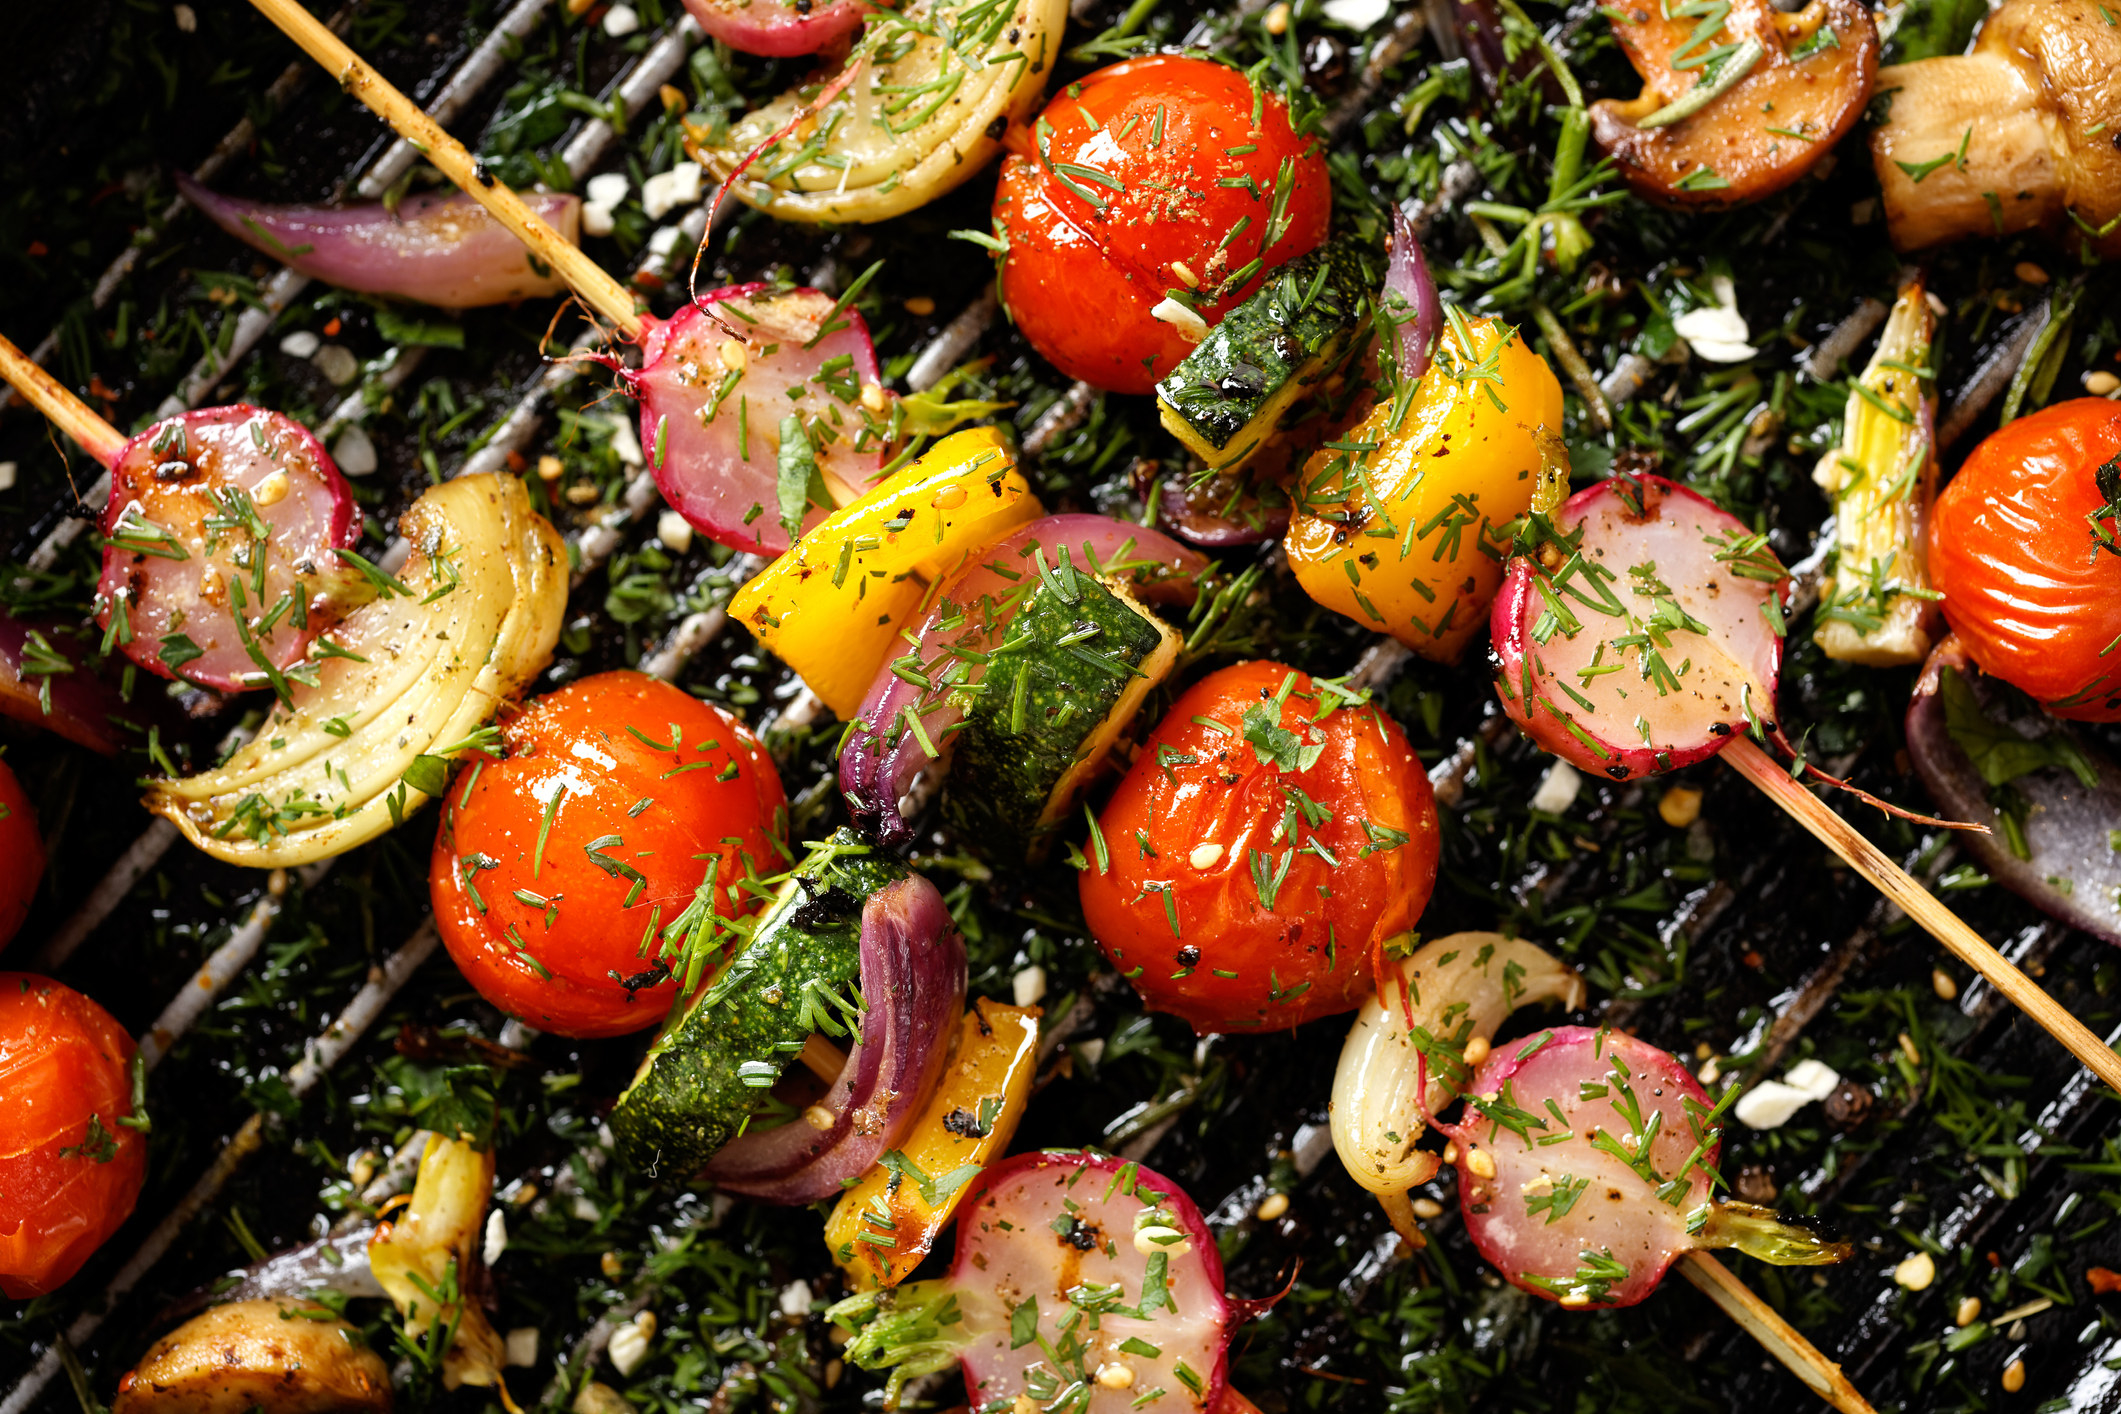 Vegetable skewers with tomato, onion, zucchini, and pepper on the grill.